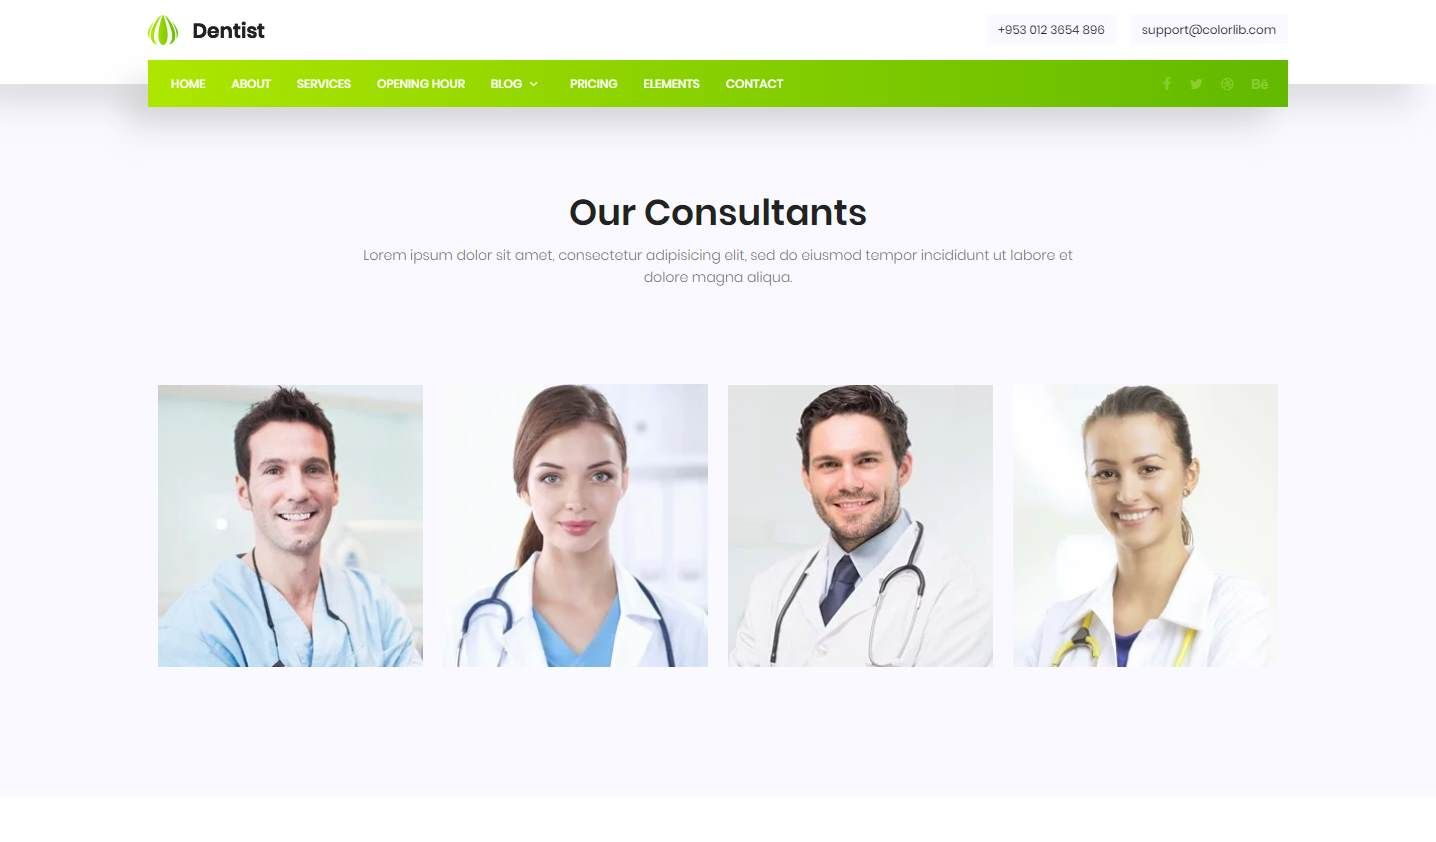 Dentist: a Mobile-Ready Free Dental Website Template For Clinics